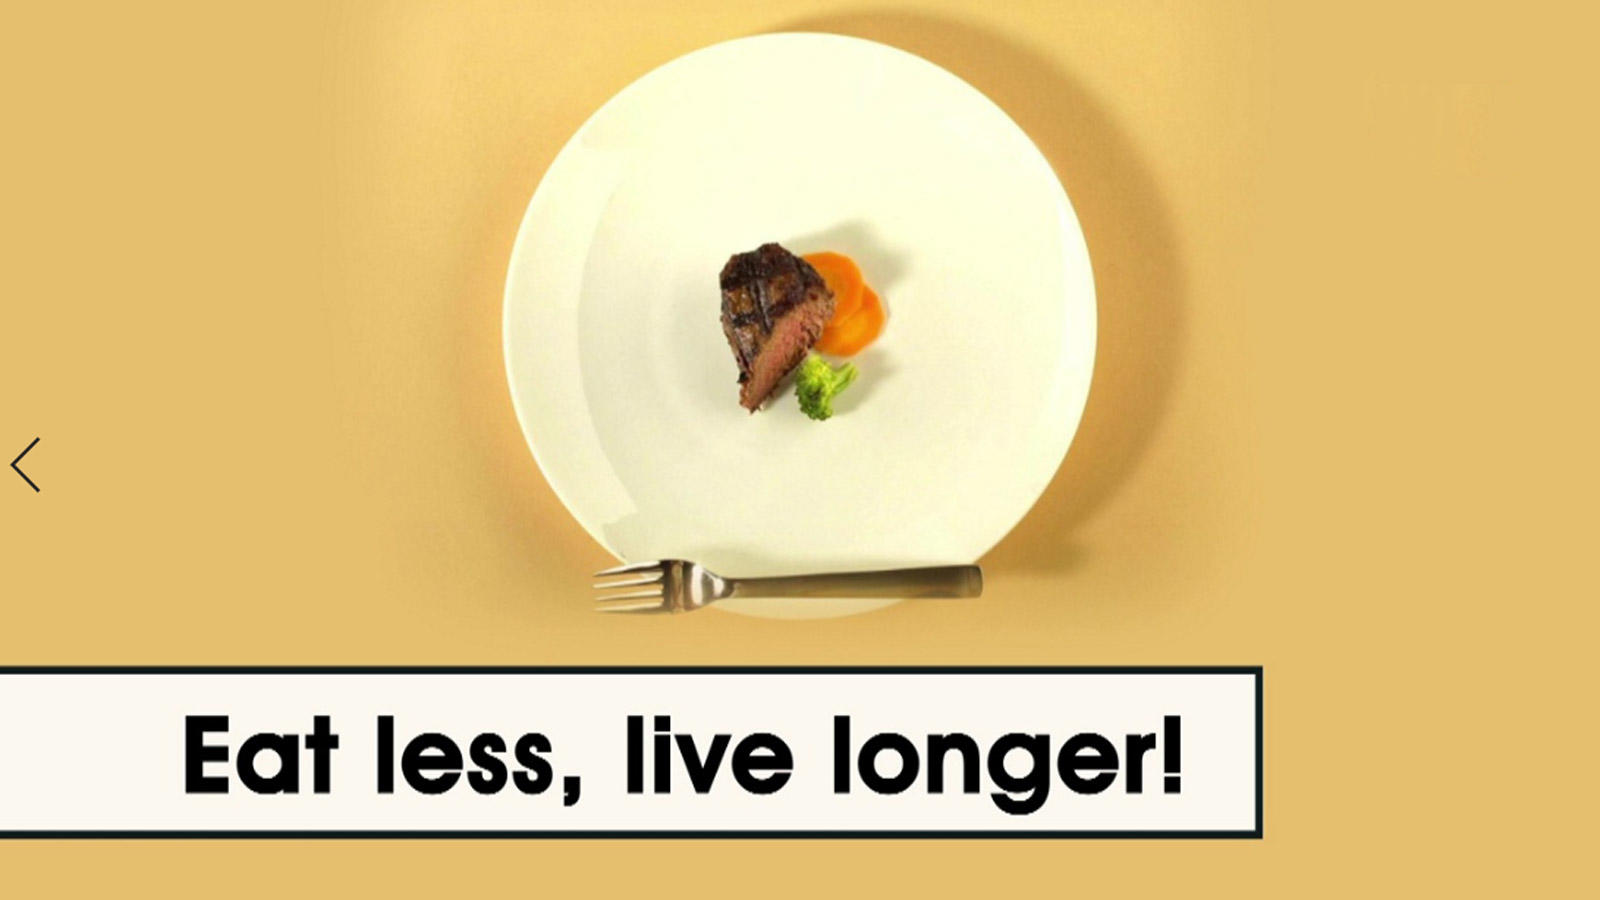 eat-less-live-longer